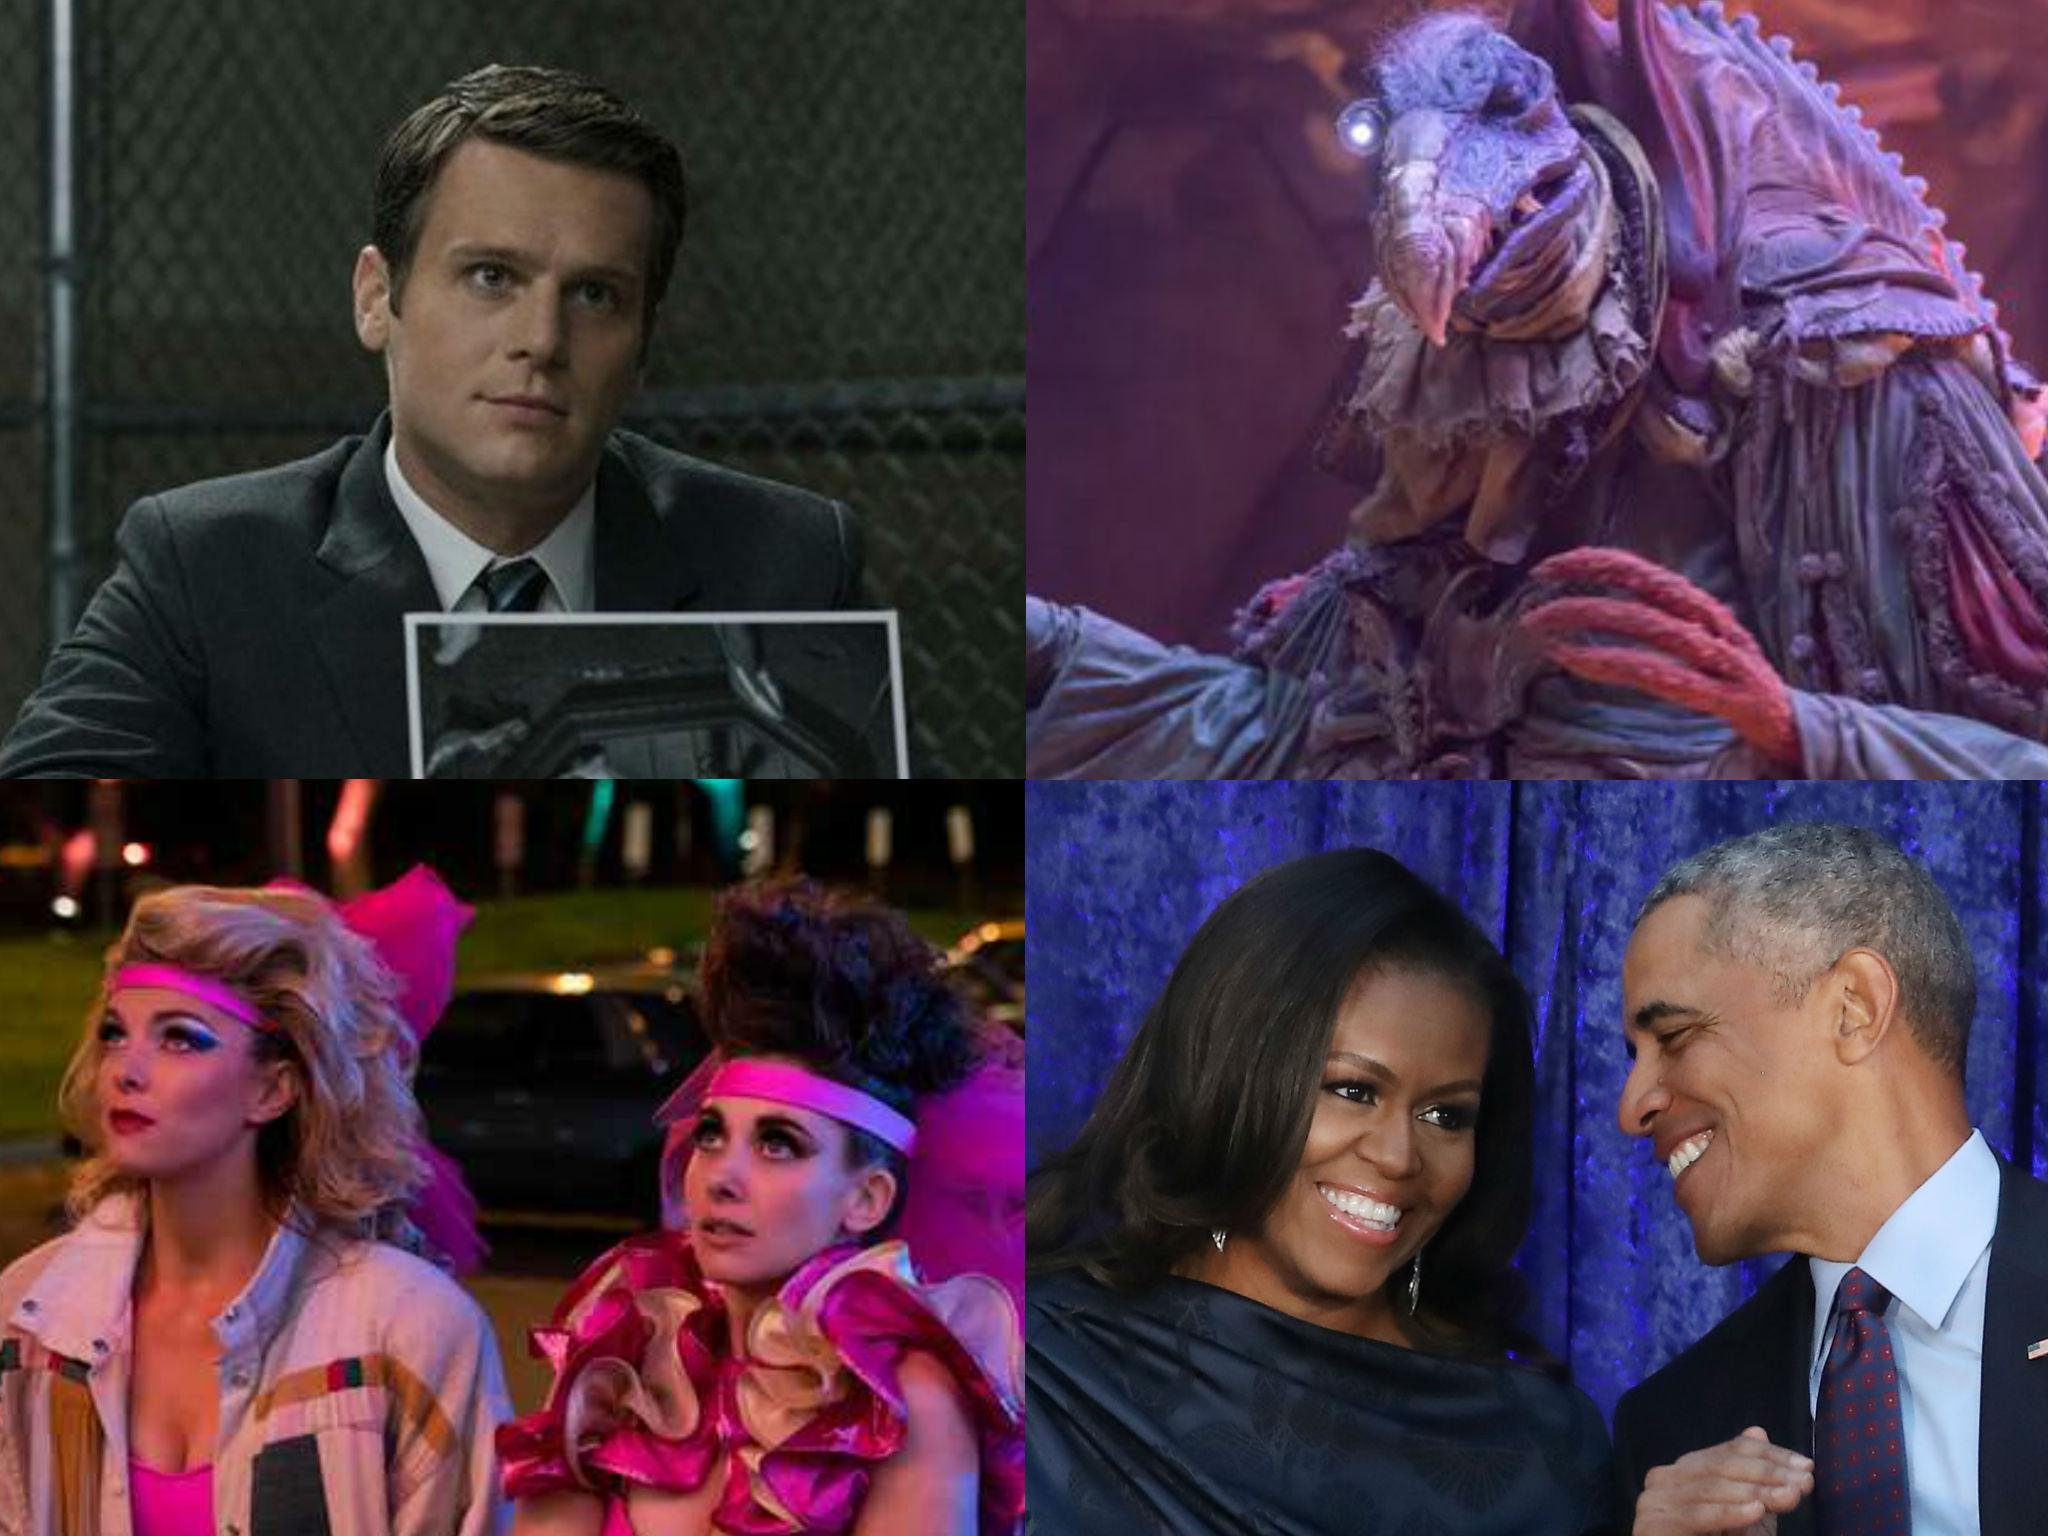 Netflix: Every movie and TV show joining in August, from Mindhunter and Glow to first Obamas film production